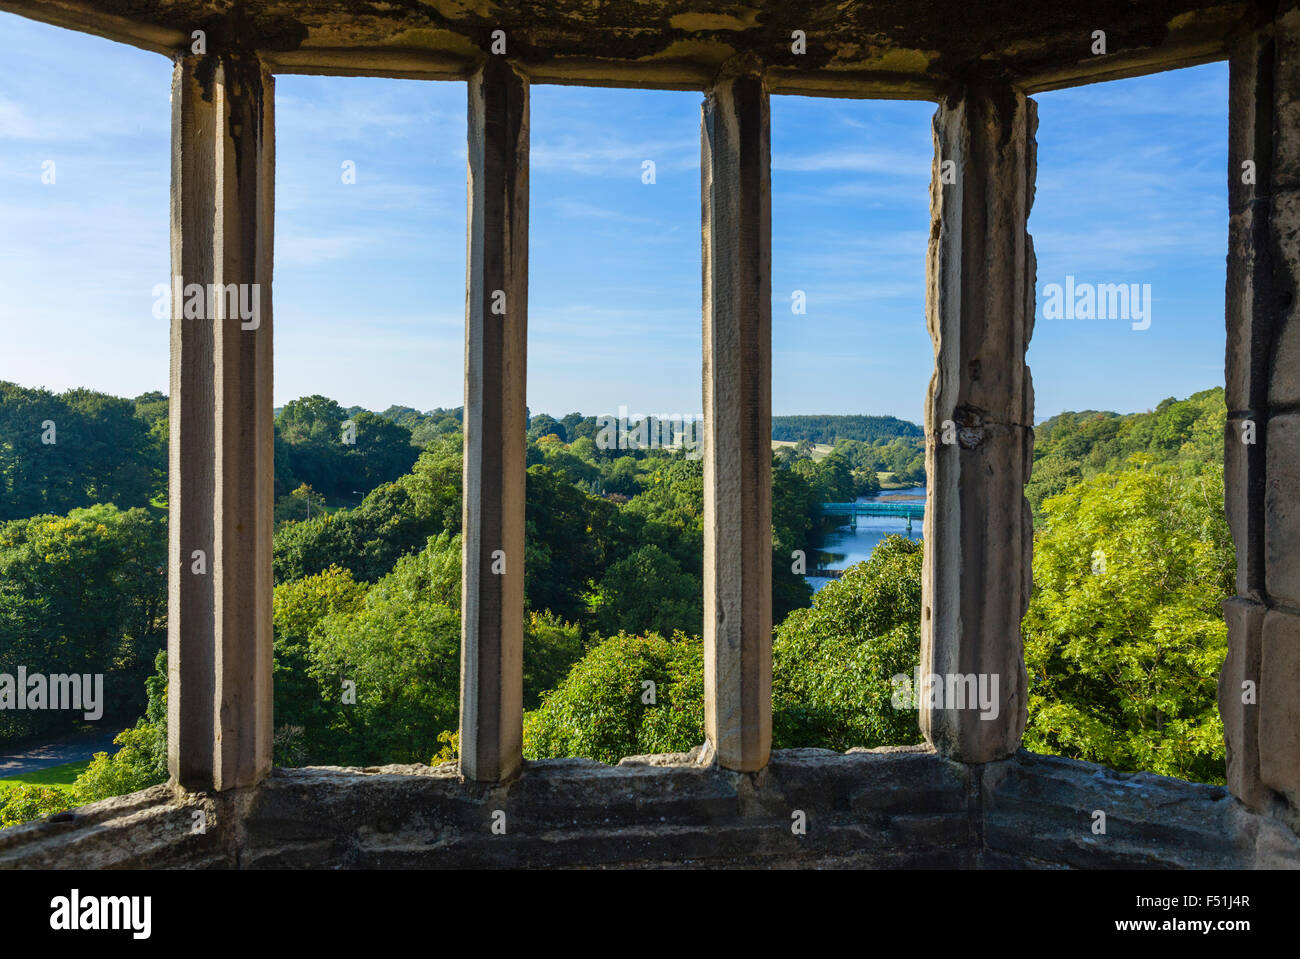 View over the River Tees from the castle in the town of Barnard Castle, County Durham, England, UK - Stock Image